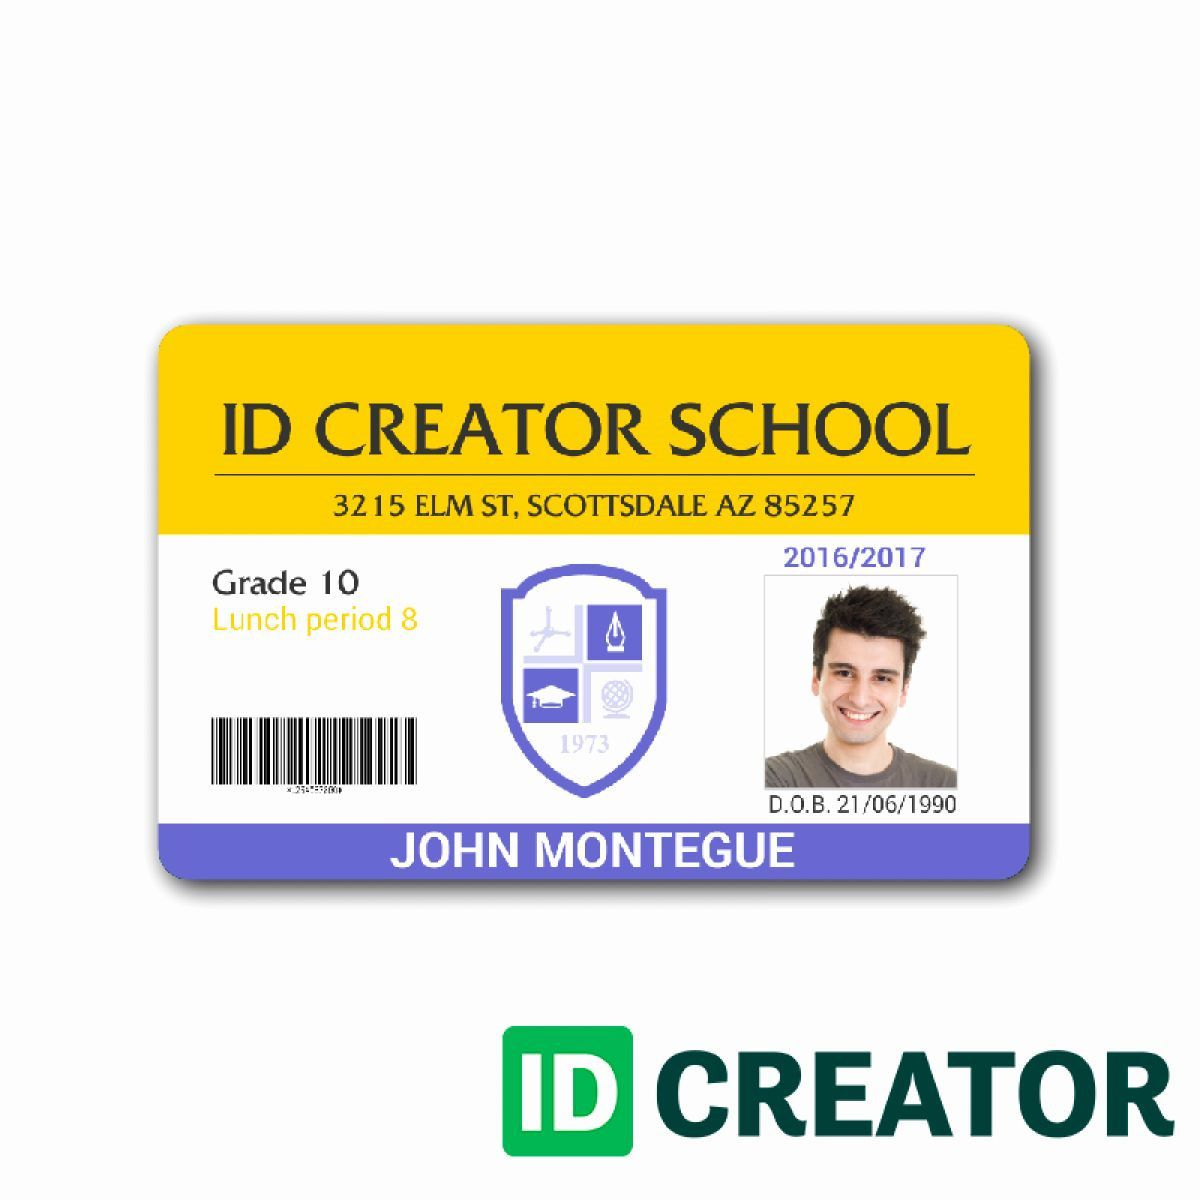 009 Sensational Student Id Card Template Concept  Psd Free School Microsoft Word DownloadFull